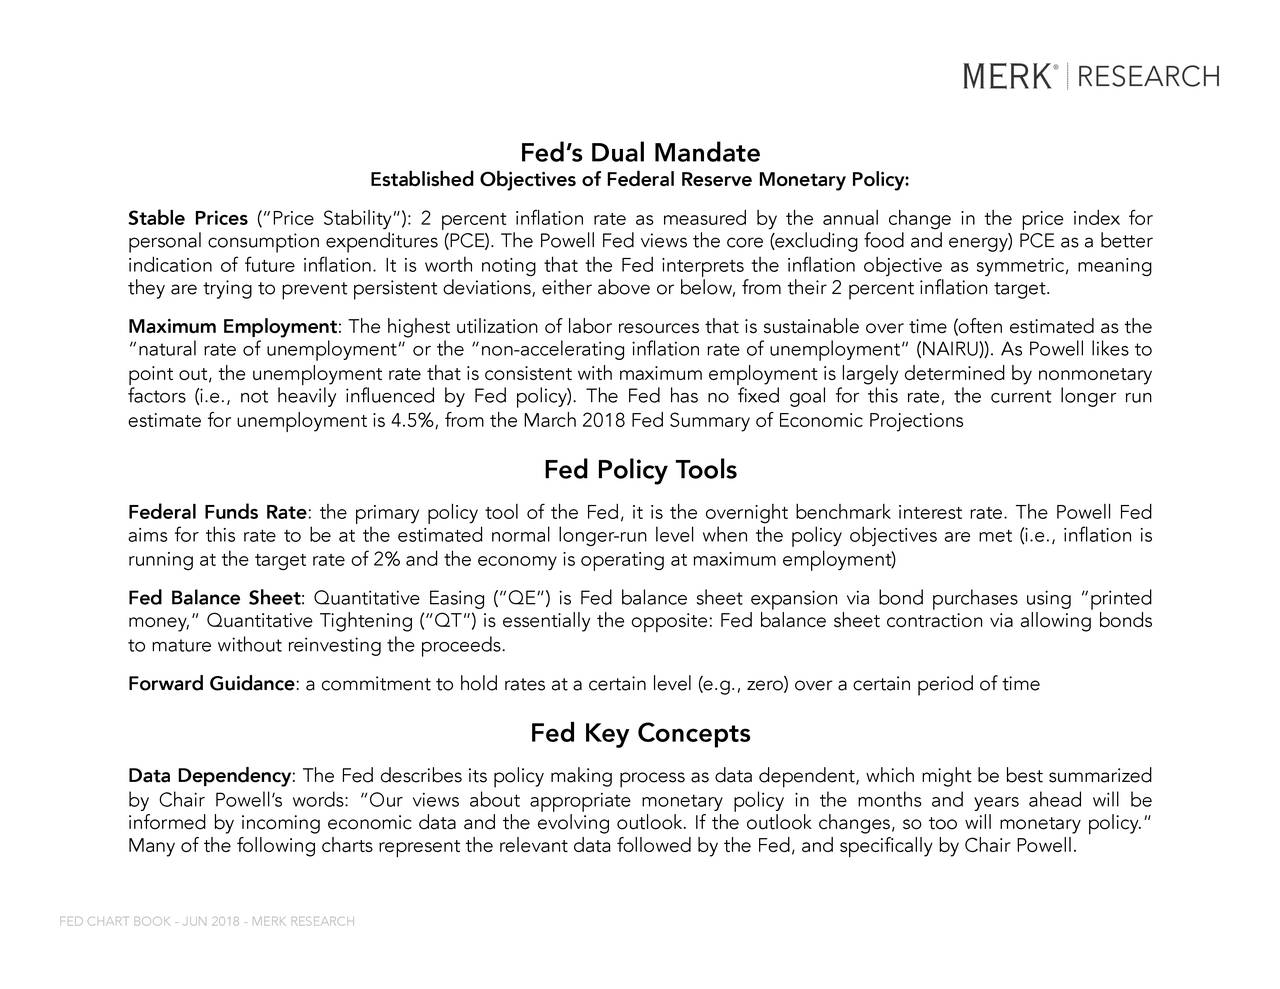 """Established Objectives of Federal Reserve Monetary Policy: Stable Prices (""""Price Stability""""): 2 percent inflation rate as measured by the annual change in the price index for personal consumption expenditures (PCE). The Powell Fed views the core (excluding food and energy) PCE as a better indication of future inflation. It is worth noting that the Fed interprets the inflation objective as symmetric, meaning they are trying to prevent persistent deviations, either above or below, from their 2 percent inflation target. Maximum Employment: The highest utilization of labor resources that is sustainable over time (often estimated as the """"natural rate of unemployment"""" or the """"non-accelerating inflation rate of unemployment"""" (NAIRU)). As Powell likes to point out, the unemployment rate that is consistent with maximum employment is largely determined by nonmonetary factors (i.e., not heavily influenced by Fed policy). The Fed has no fixed goal for this rate, the current longer run estimate for unemployment is 4.5%, from the March 2018 Fed Summary of Economic Projections Fed Policy Tools Federal Funds Rate: the primary policy tool of the Fed, it is the overnight benchmark interest rate. The Powell Fed aims for this rate to be at the estimated normal longer-run level when the policy objectives are met (i.e., inflation is running at the target rate of 2% and the economy is operating at maximum employment) Fed Balance Sheet: Quantitative Easing (""""QE"""") is Fed balance sheet expansion via bond purchases using """"printed money,"""" Quantitative Tightening (""""QT"""") is essentially the opposite: Fed balance sheet contraction via allowing bonds to mature without reinvesting the proceeds. Forward Guidance: a commitment to hold rates at a certain level (e.g., zero) over a certain period of time Fed Key Concepts Data Dependency: The Fed describes its policy making process as data dependent, which might be best summarized by Chair Powell's words: """"Our views about appropriate monetary policy in th"""